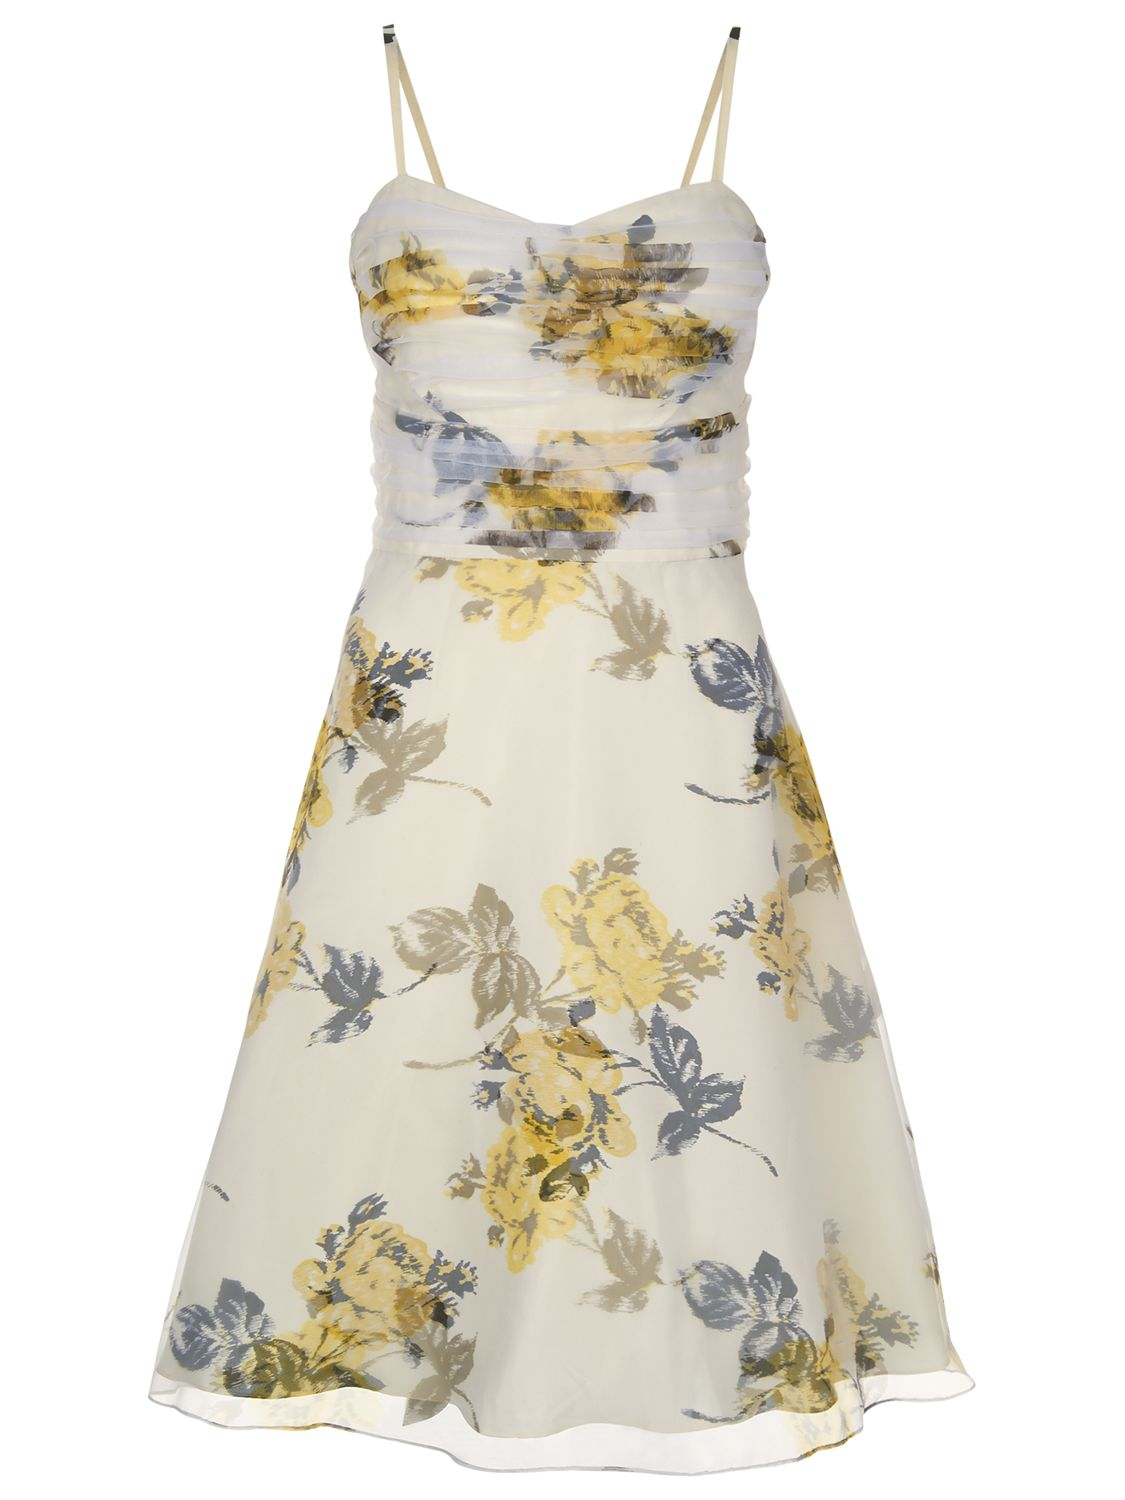 kaliko vintage colour dress multi yellow, kaliko, vintage, colour, dress, multi, yellow, 10|18|16|14|12|8|20, women, plus size, womens dresses, gifts, wedding, wedding clothing, female guests, inactive womenswear, outfit ideas, 1875654